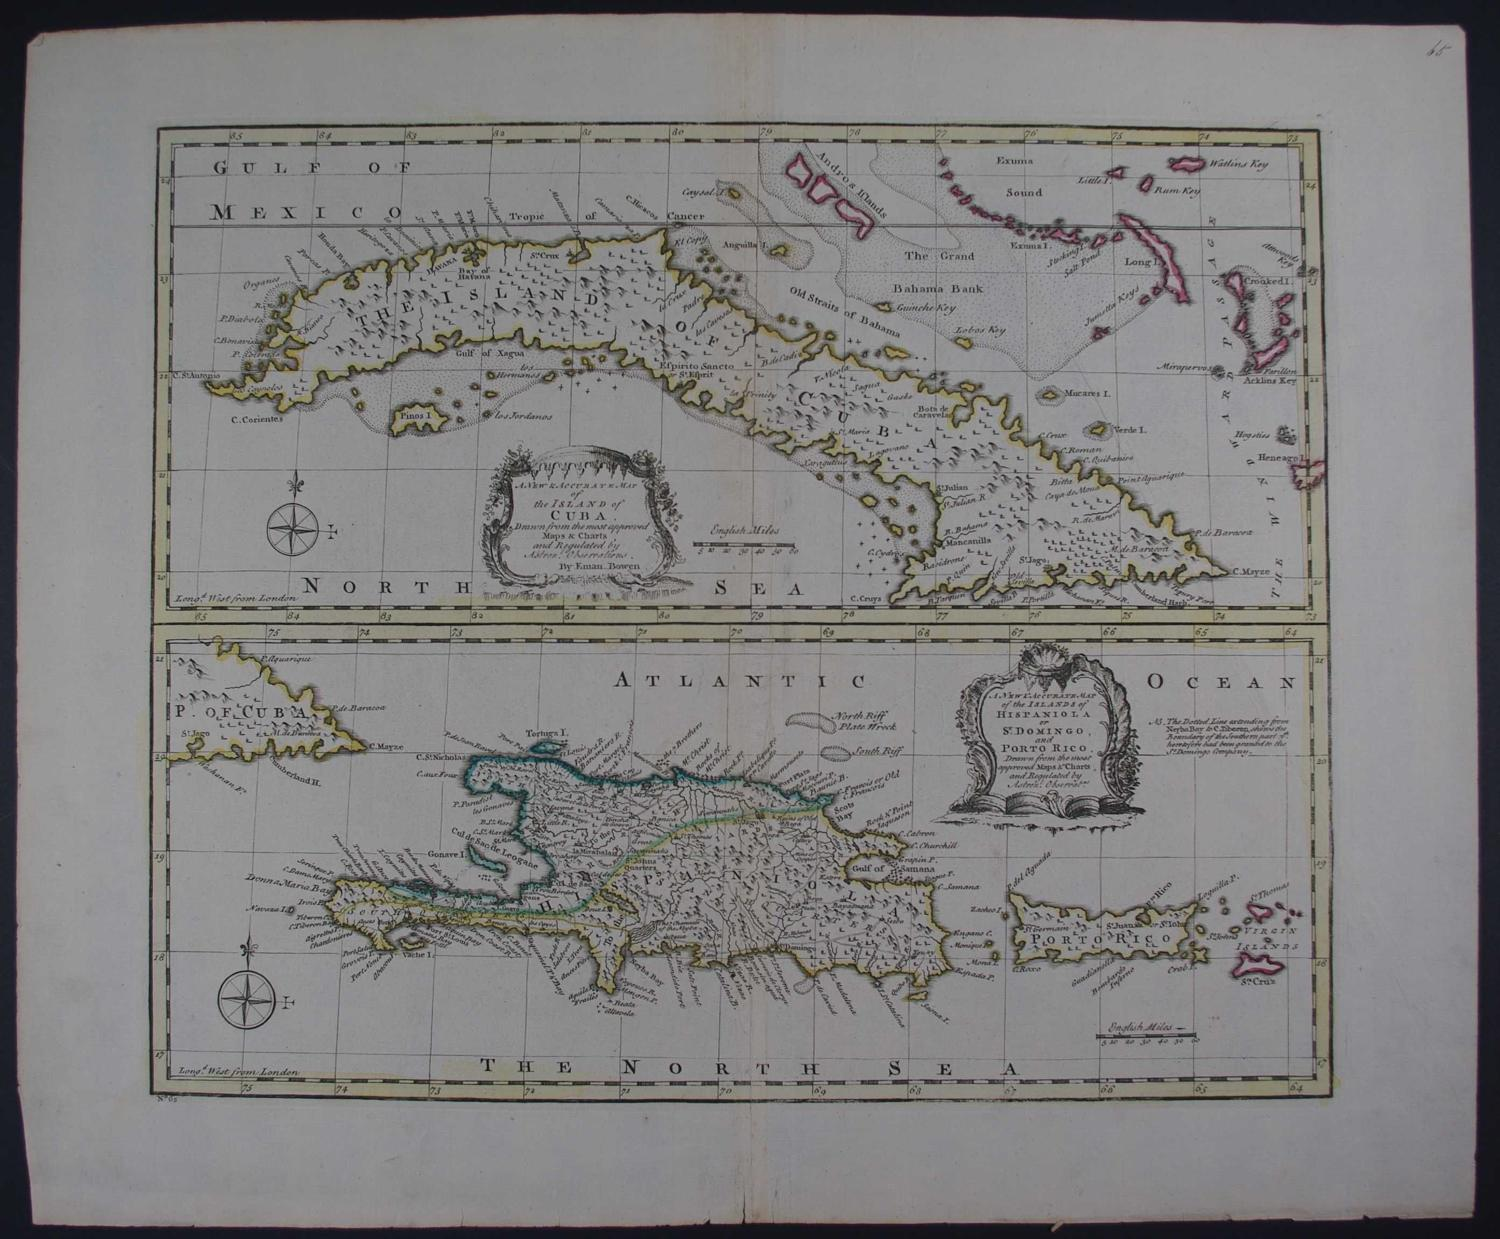 A New and Accurate Map of the island of Cuba by Emanuel Bowen